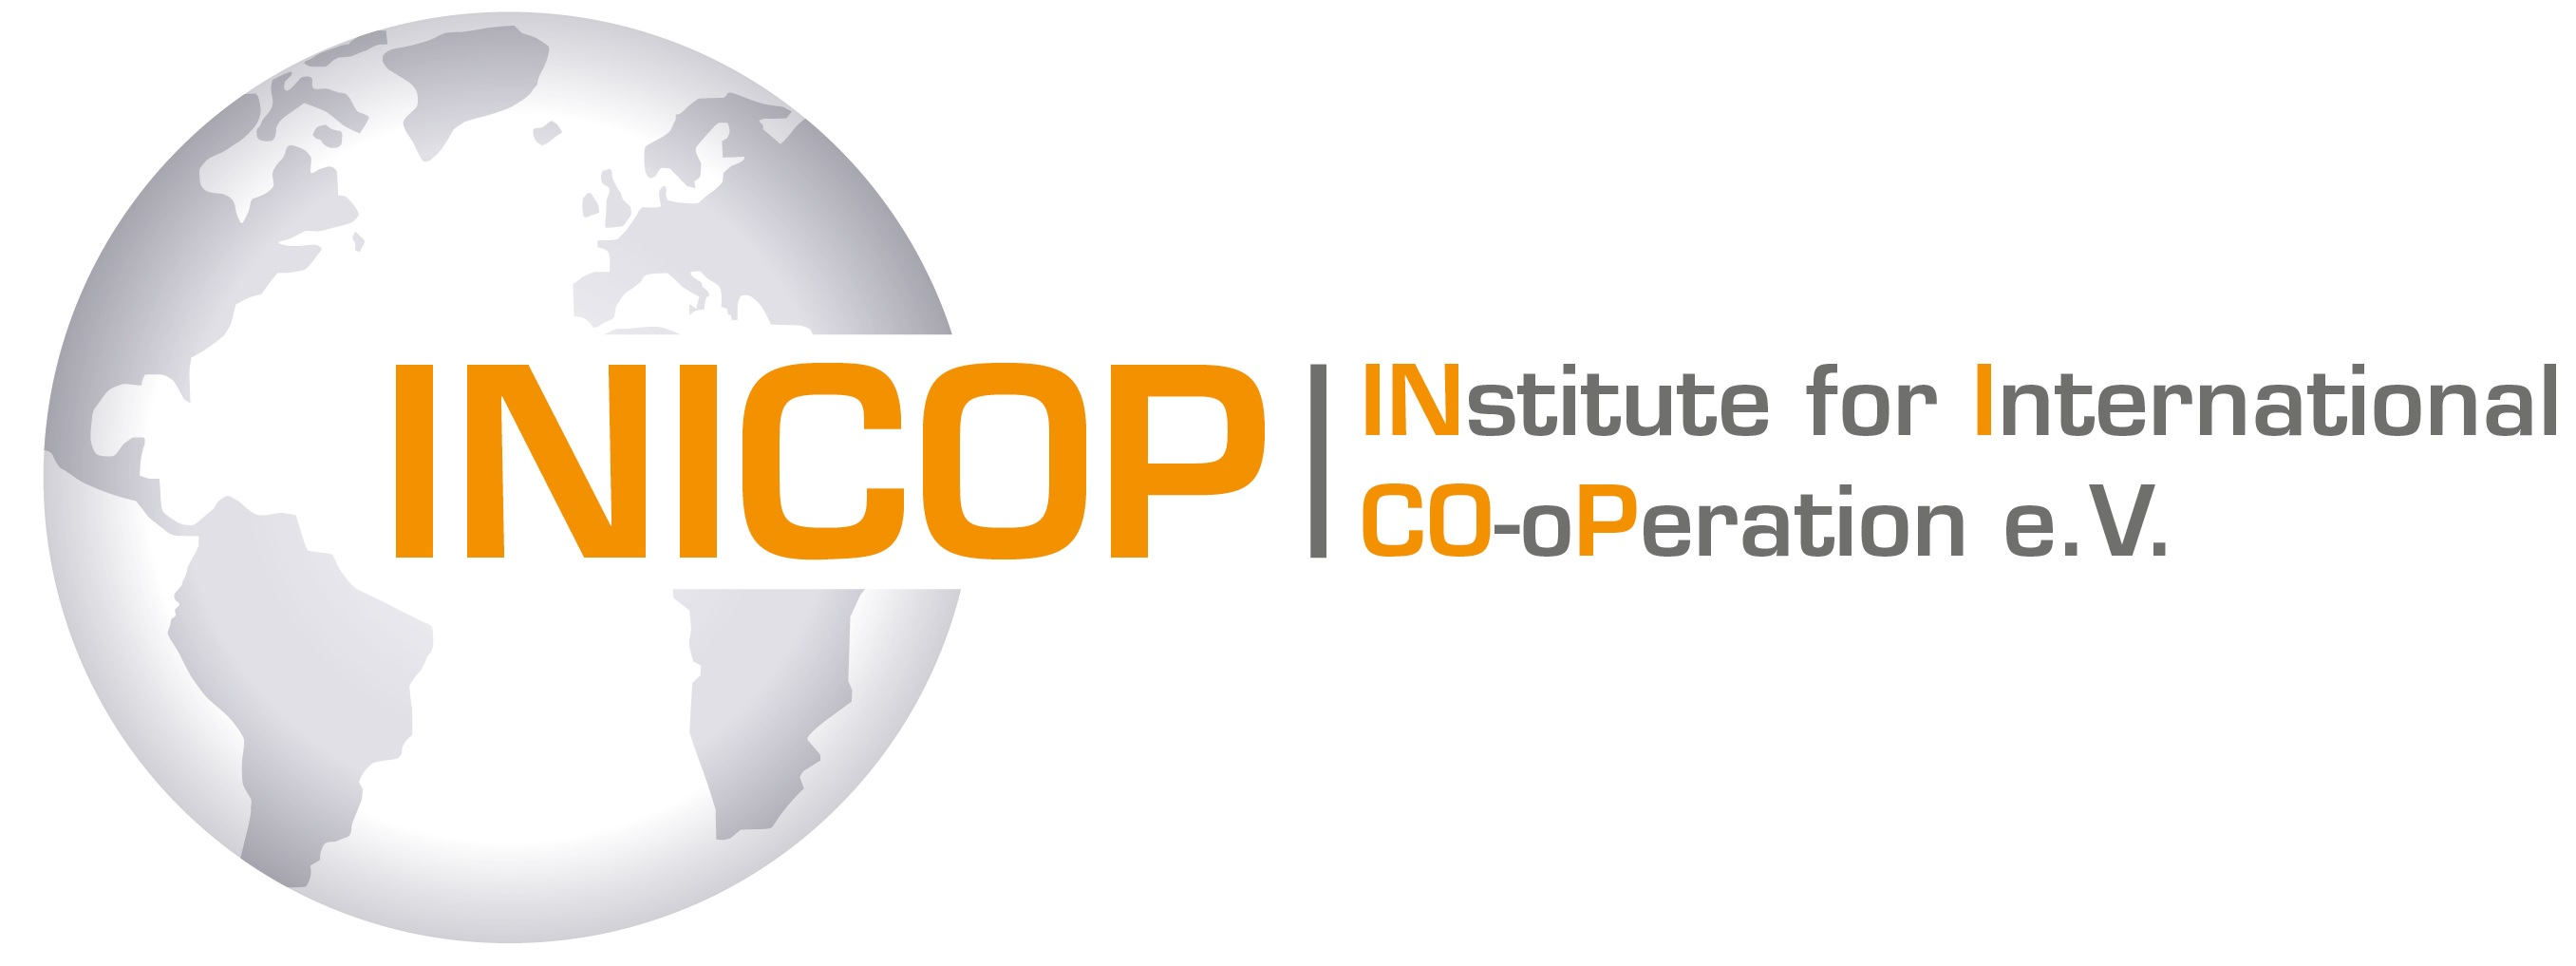 www.inicop.org: Institute for International Co-operation.